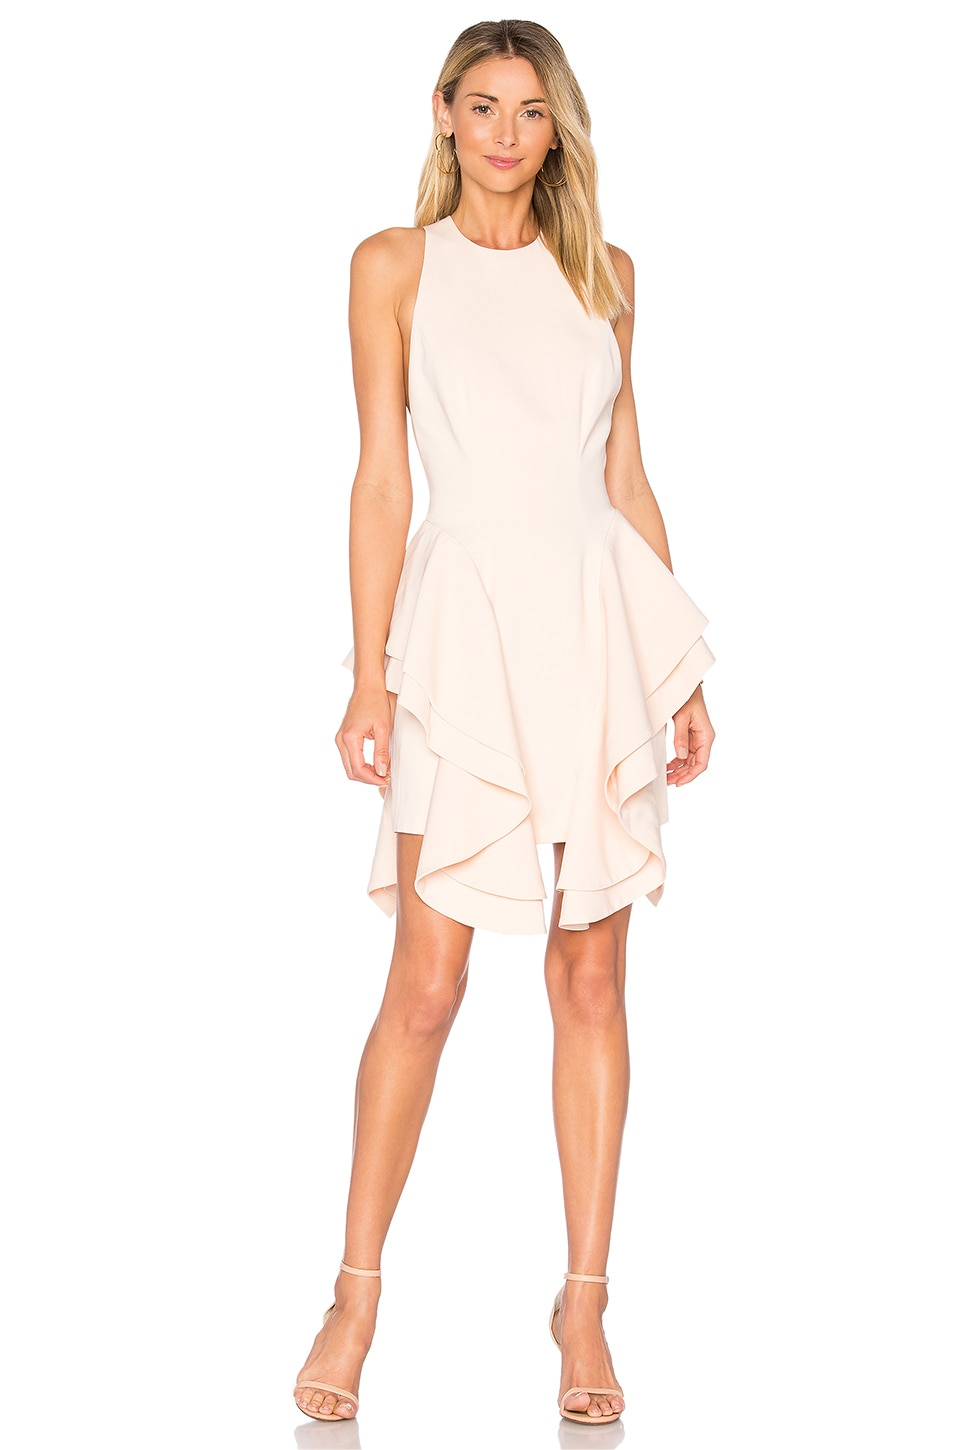 C/MEO Enlighten Mini Dress in Pearl